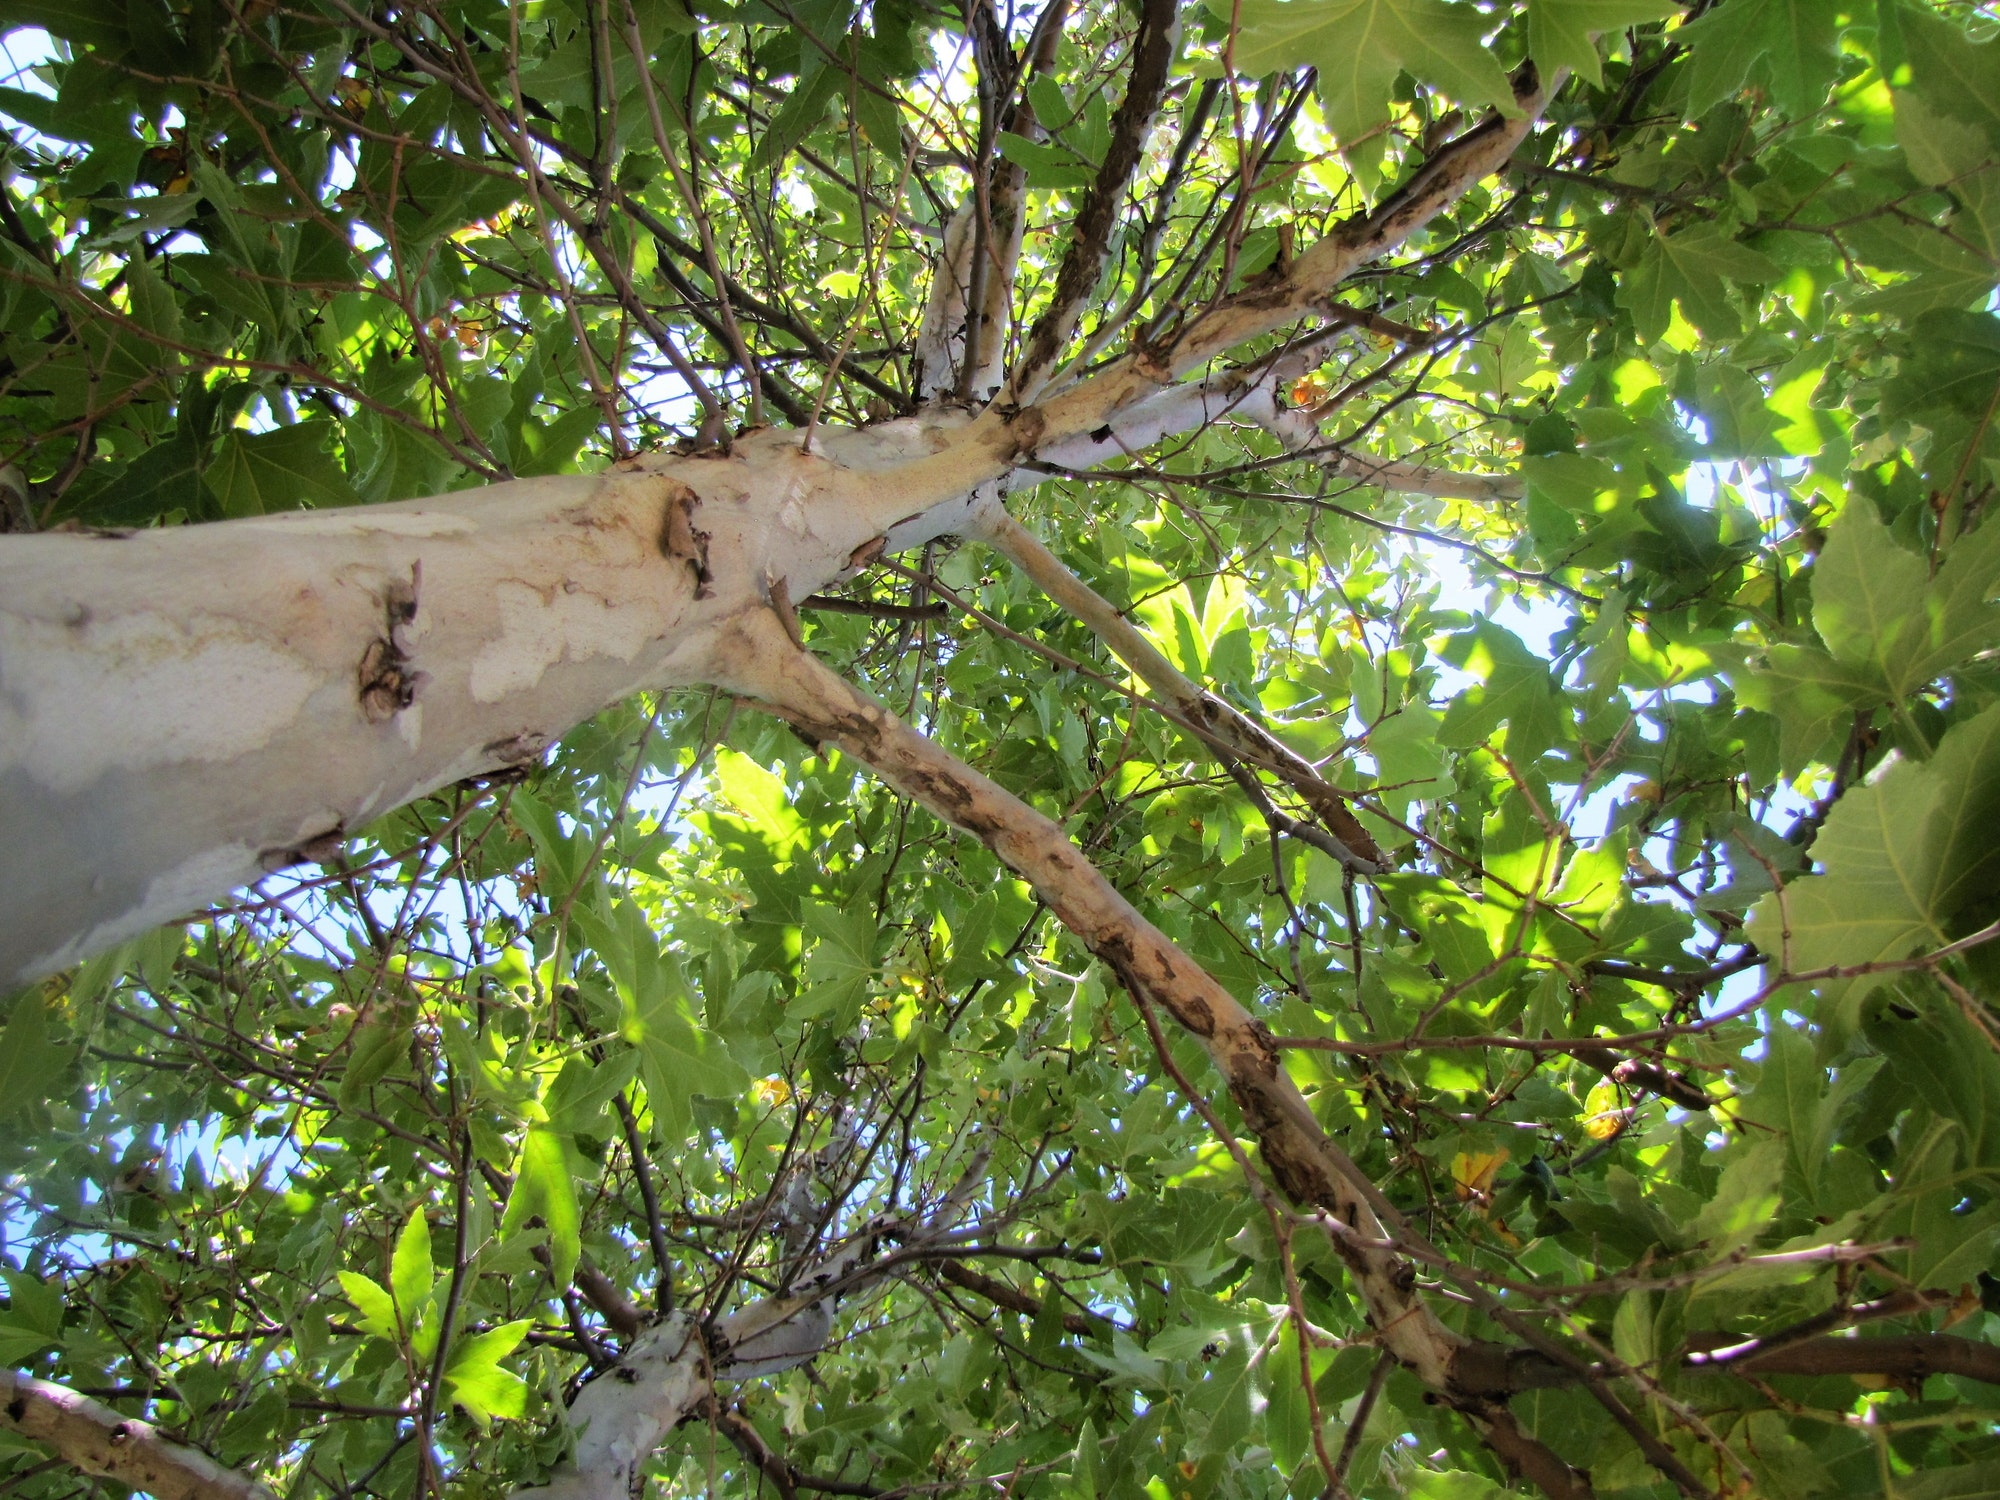 Upward view of sycamore tree